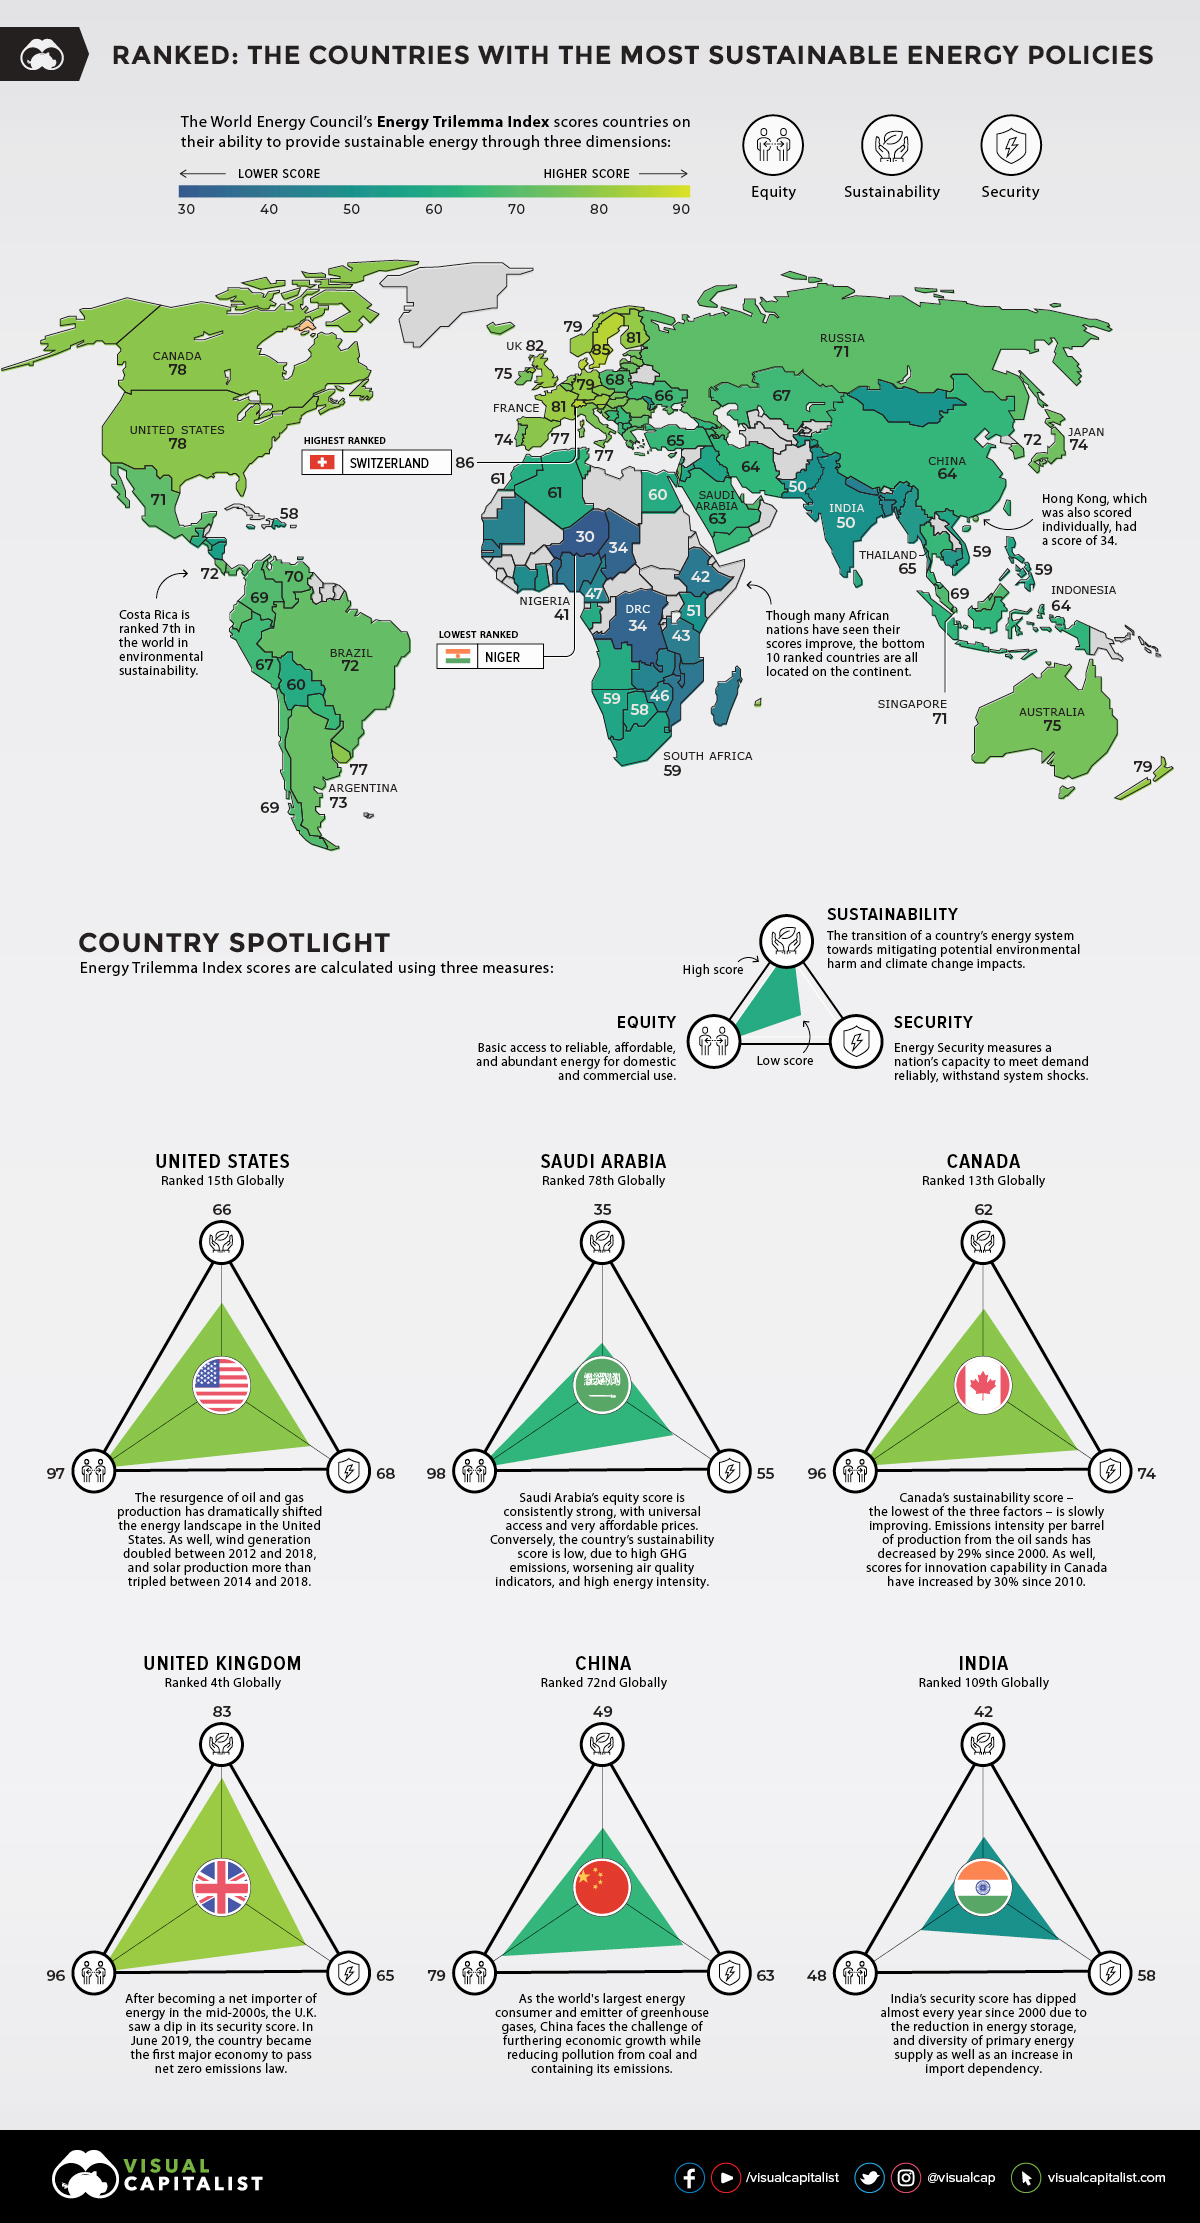 Countries with the Most Sustainable Energy Policies